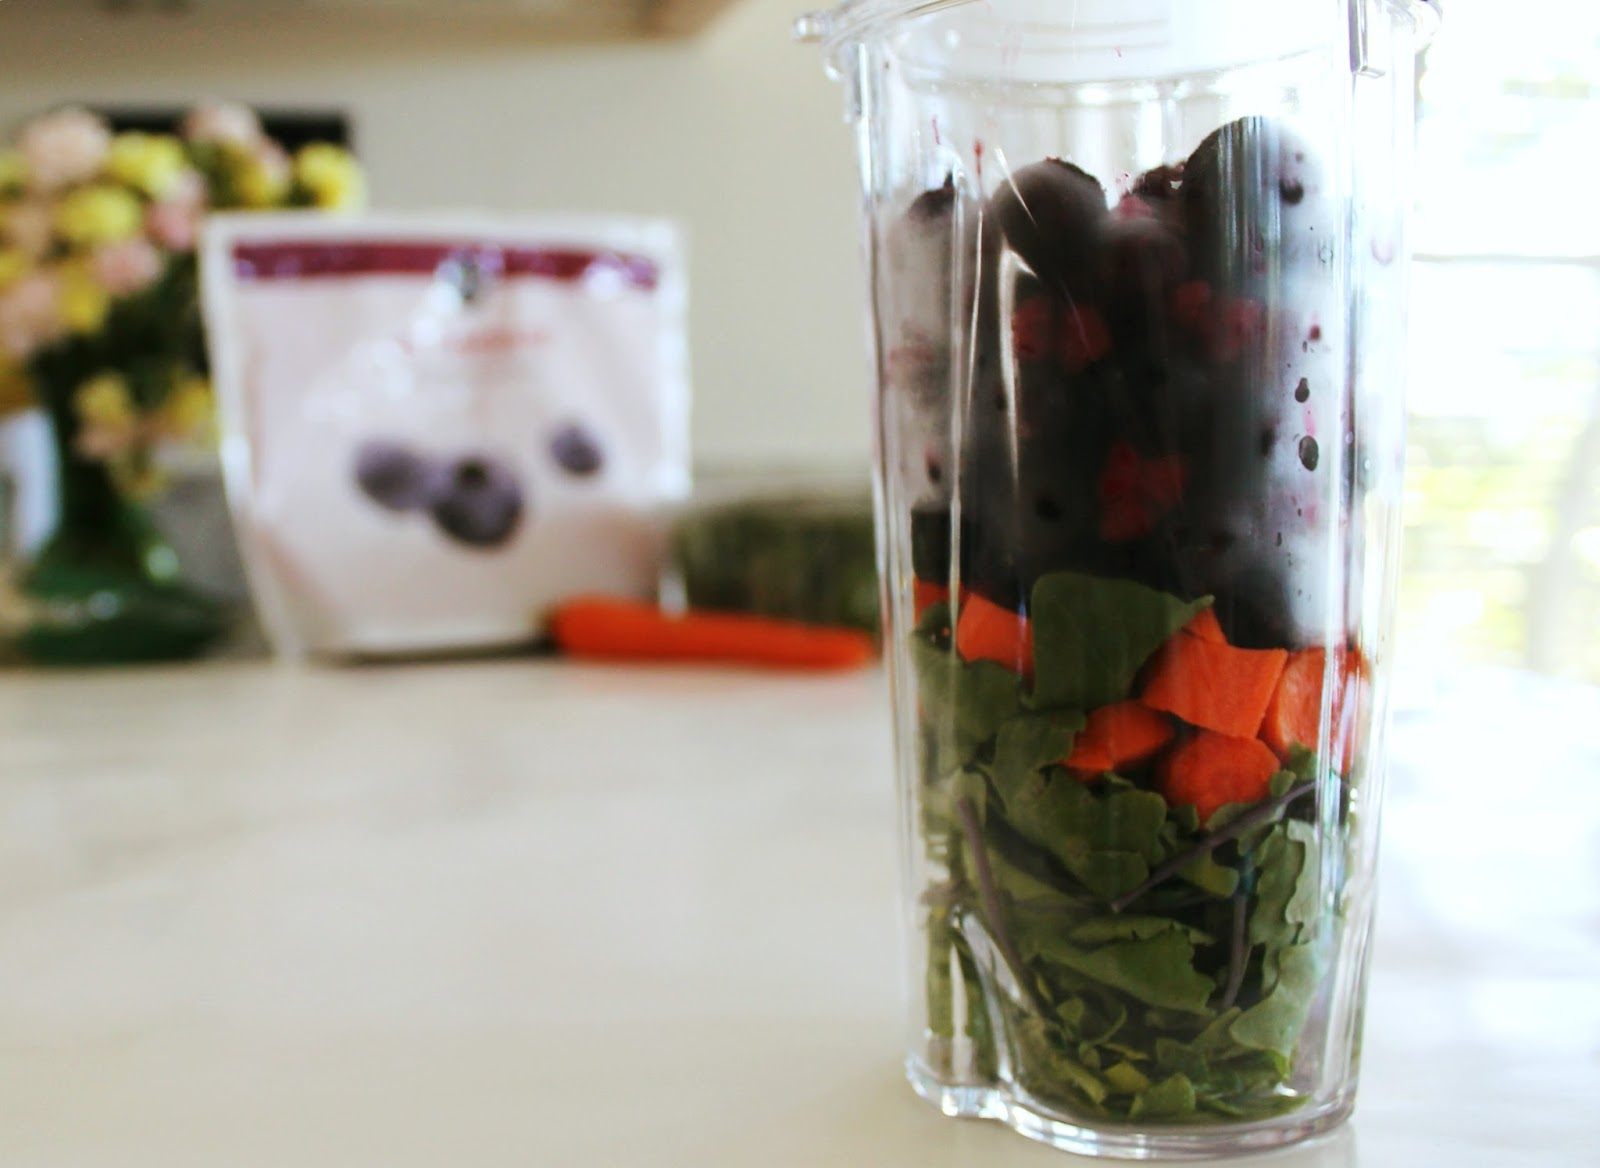 Blueberry Kale Smoothie Recipe, green smoothies, healthy smoothies, kale smoothie, blueberry smoothie, smoothie recipes